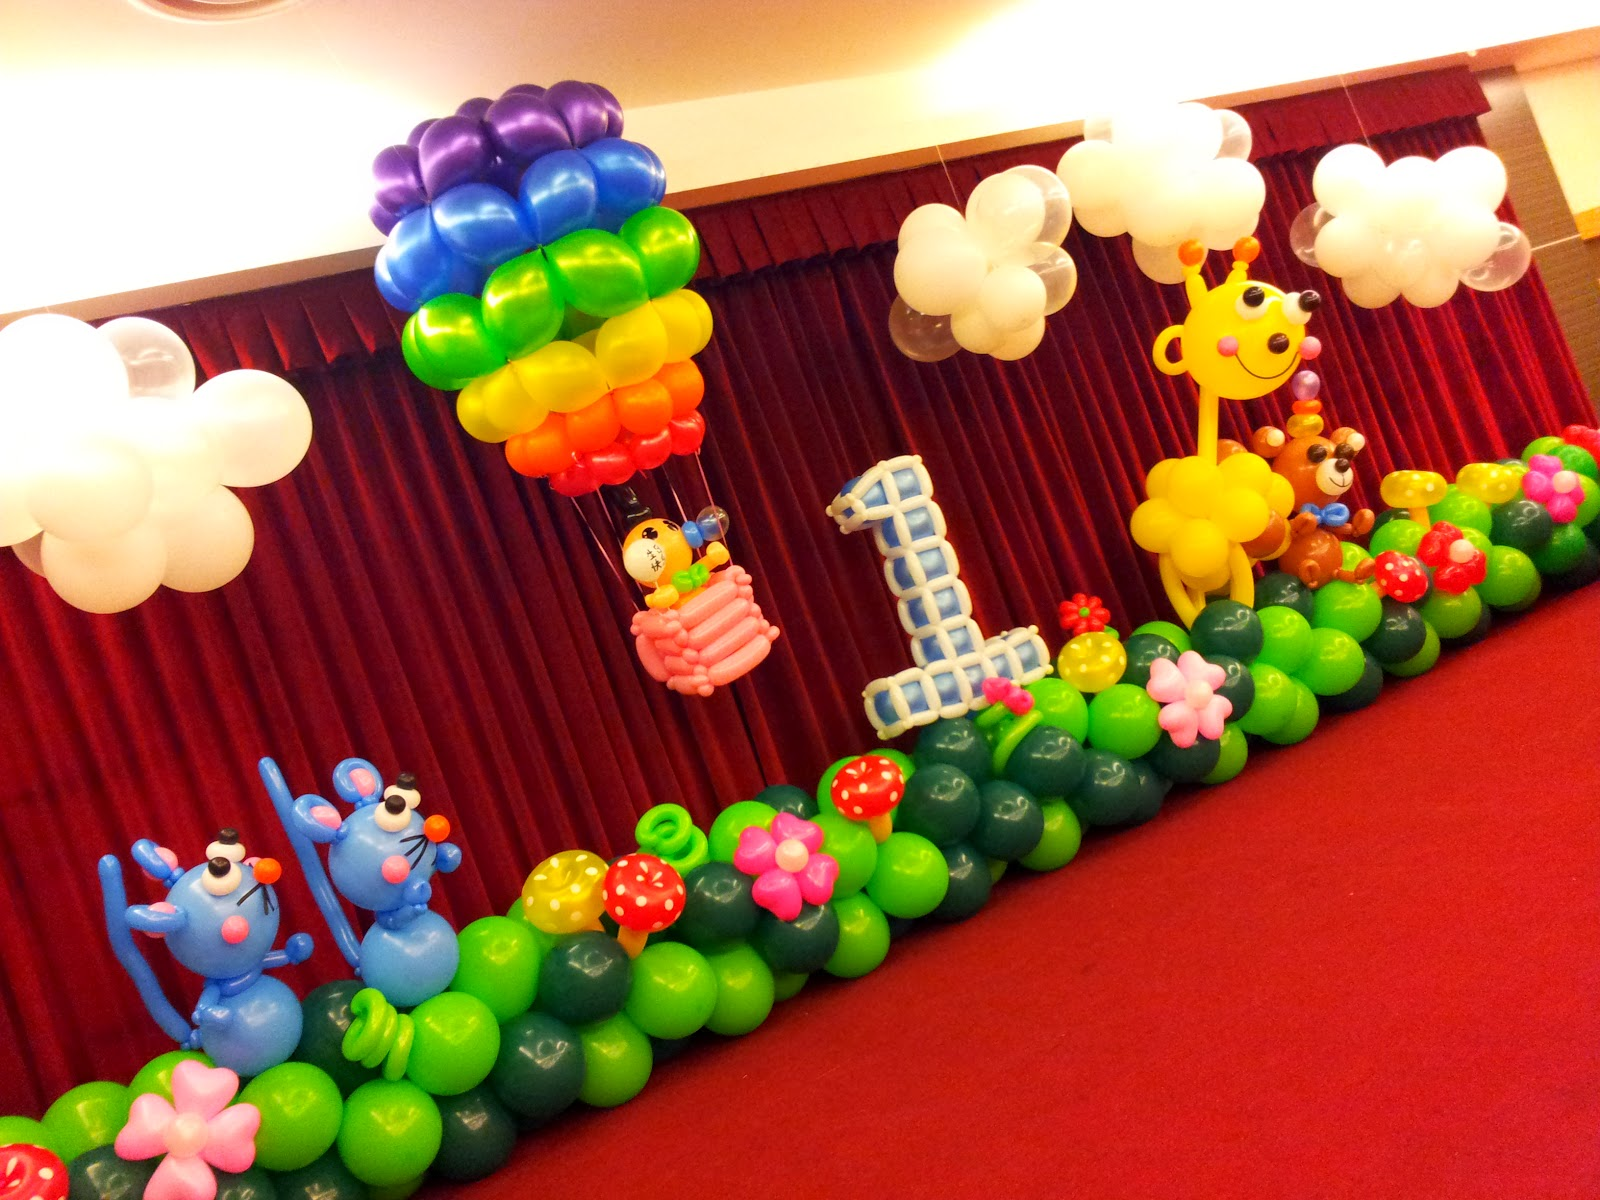 Smooth party rb planners for Balloon decoration for kids party